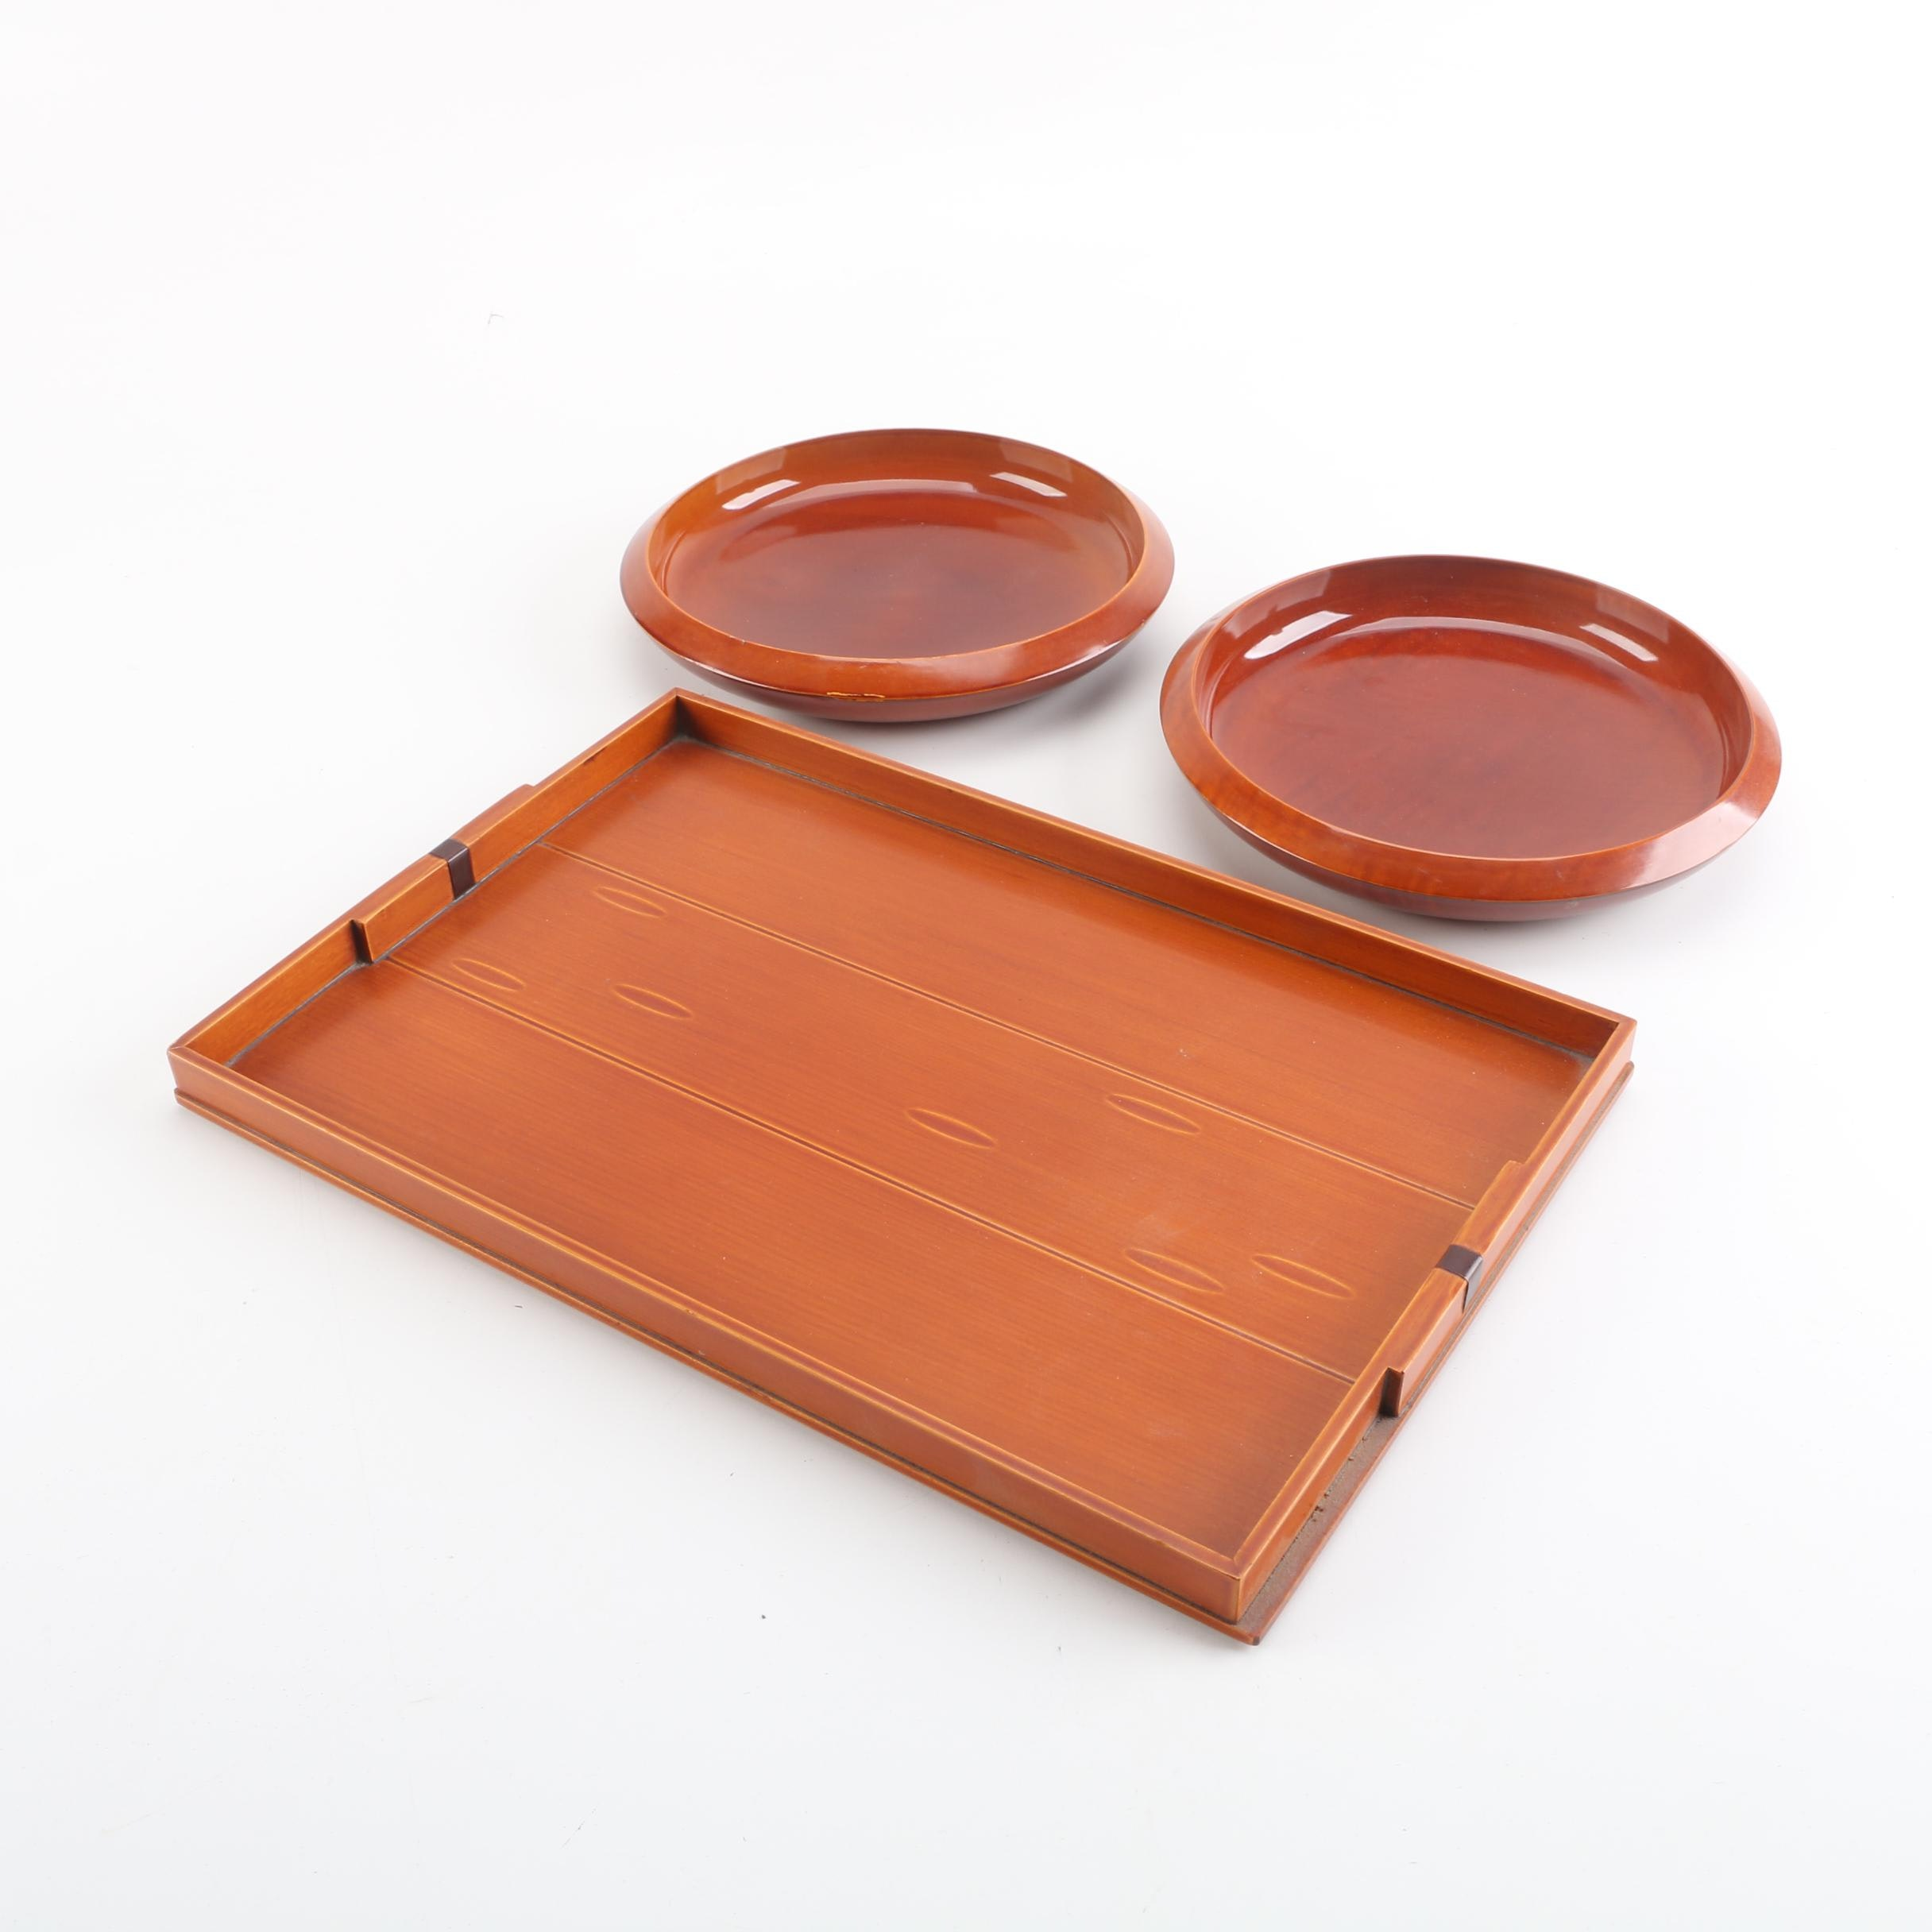 Wooden Serving Tray and Shallow Bowls